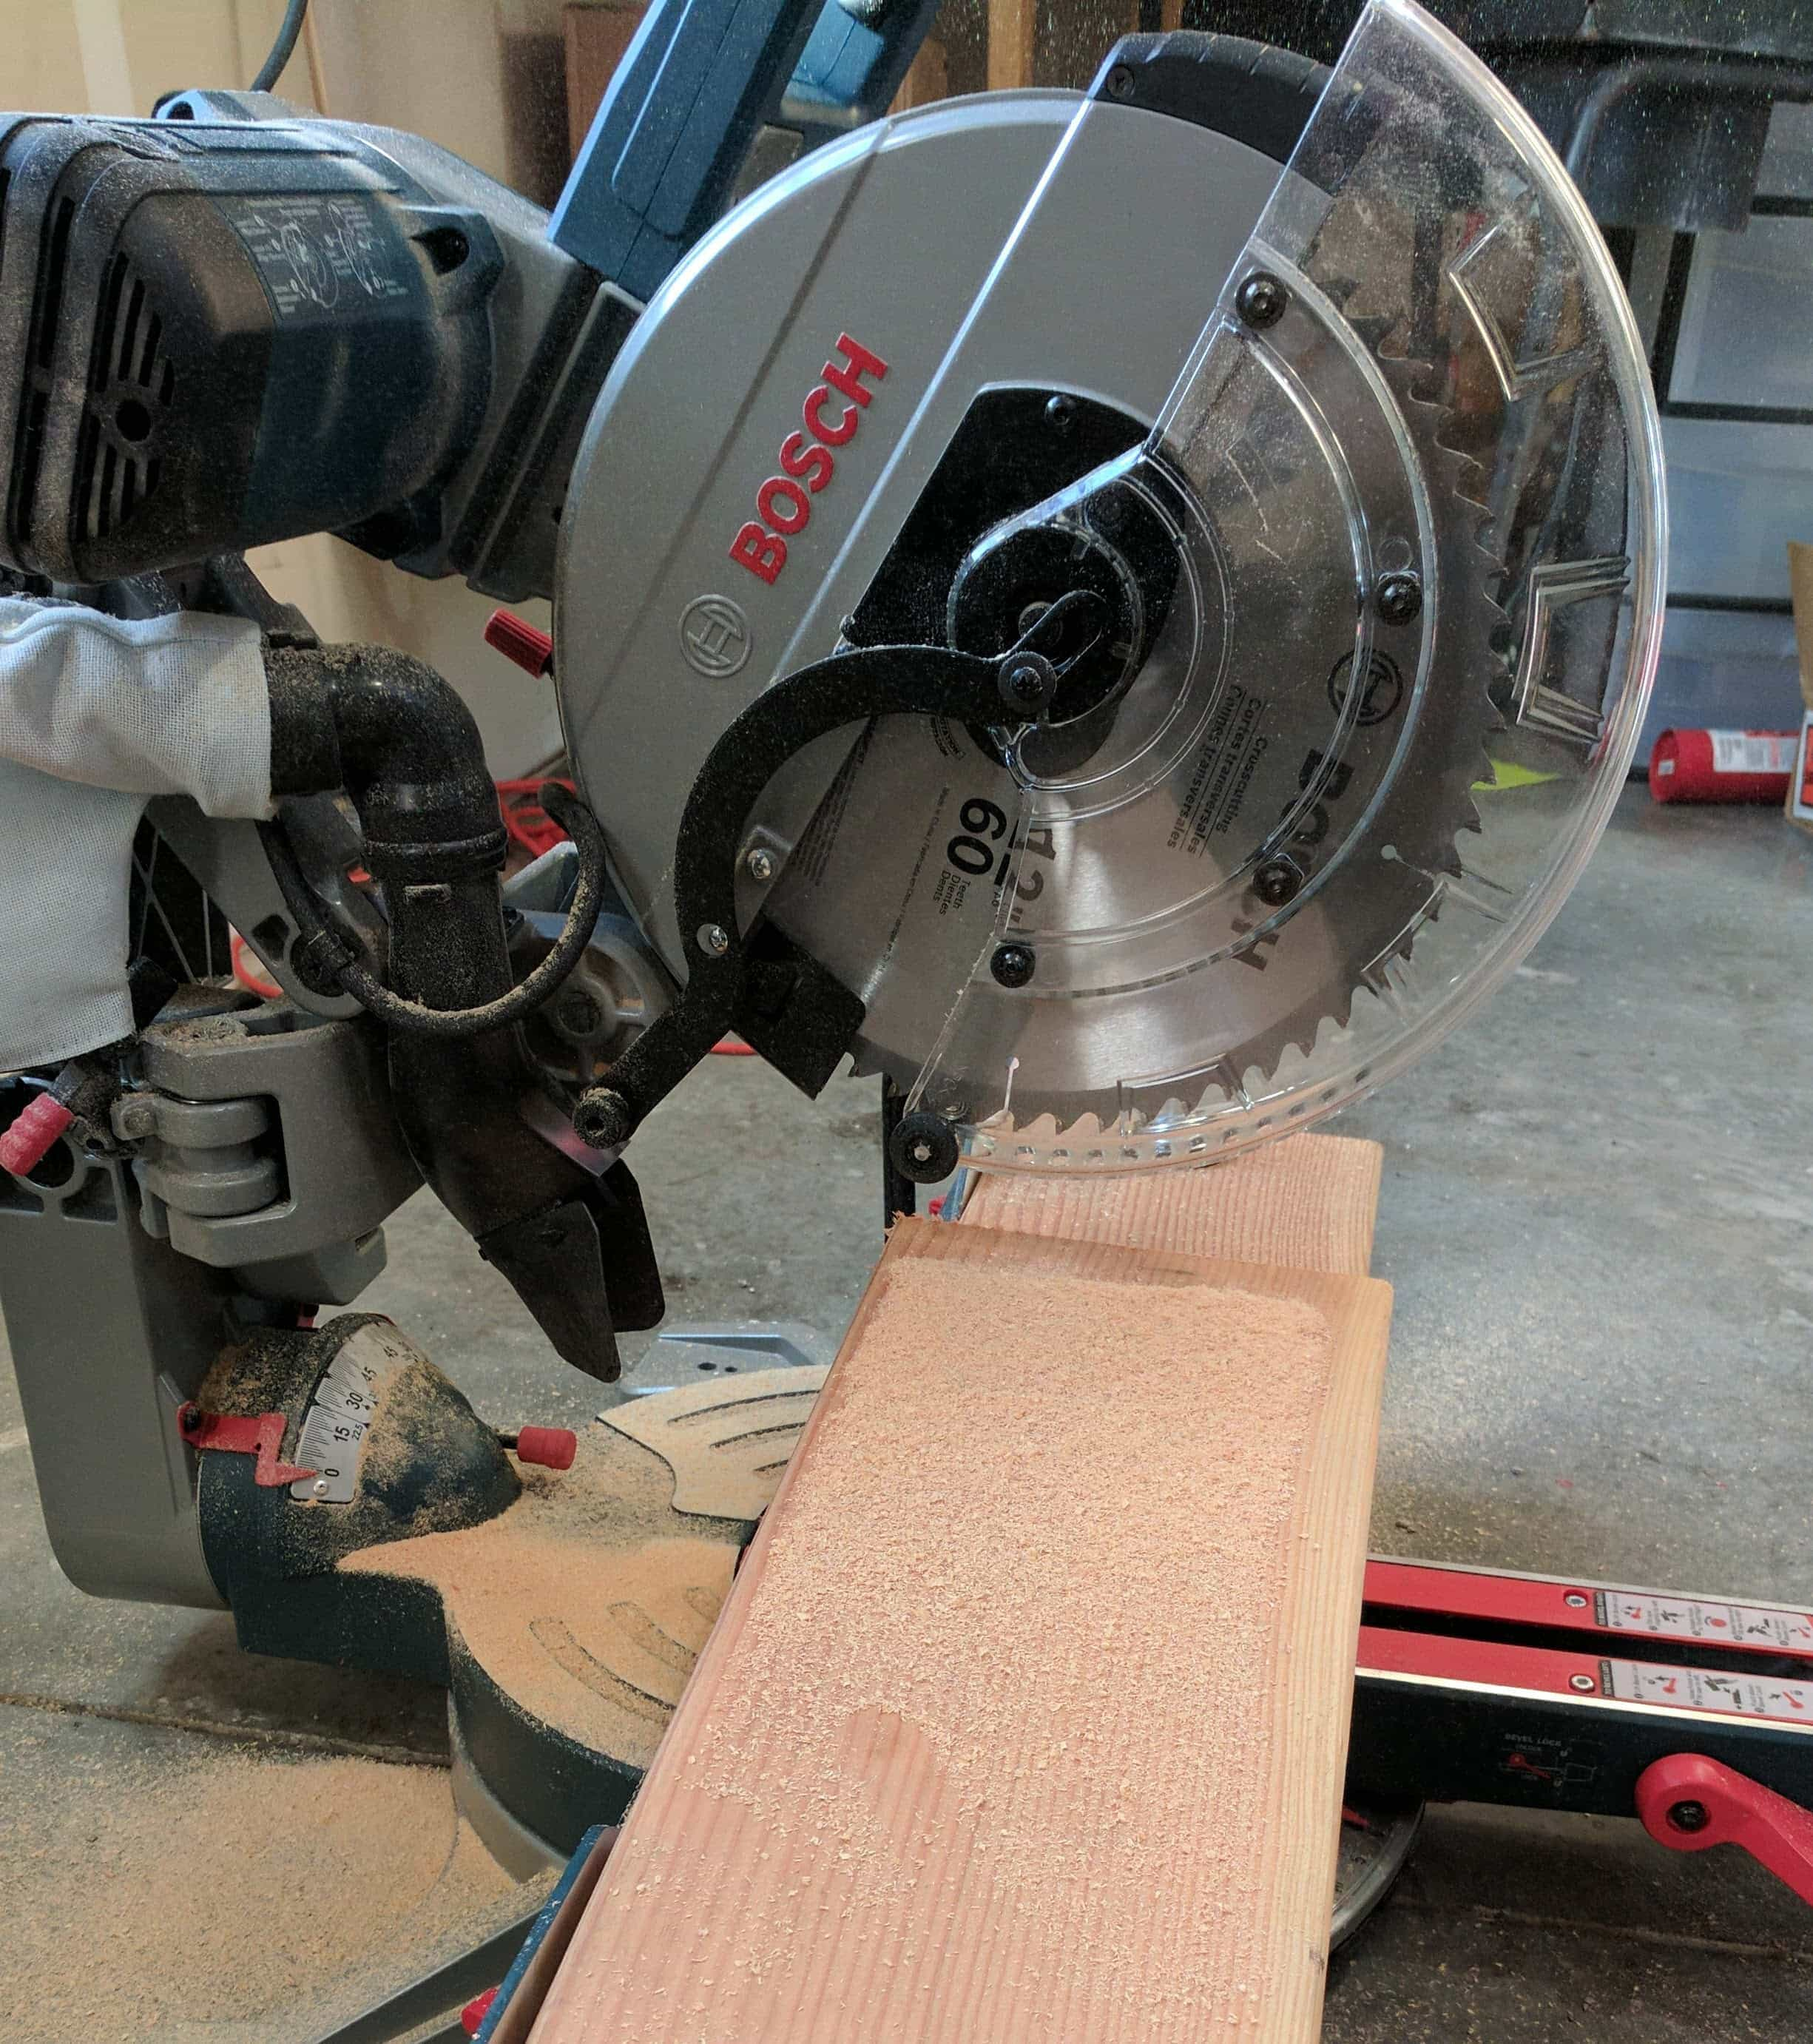 Bosch Miter Saw after cutting boards for a DIY Wood Plank Accent Wall